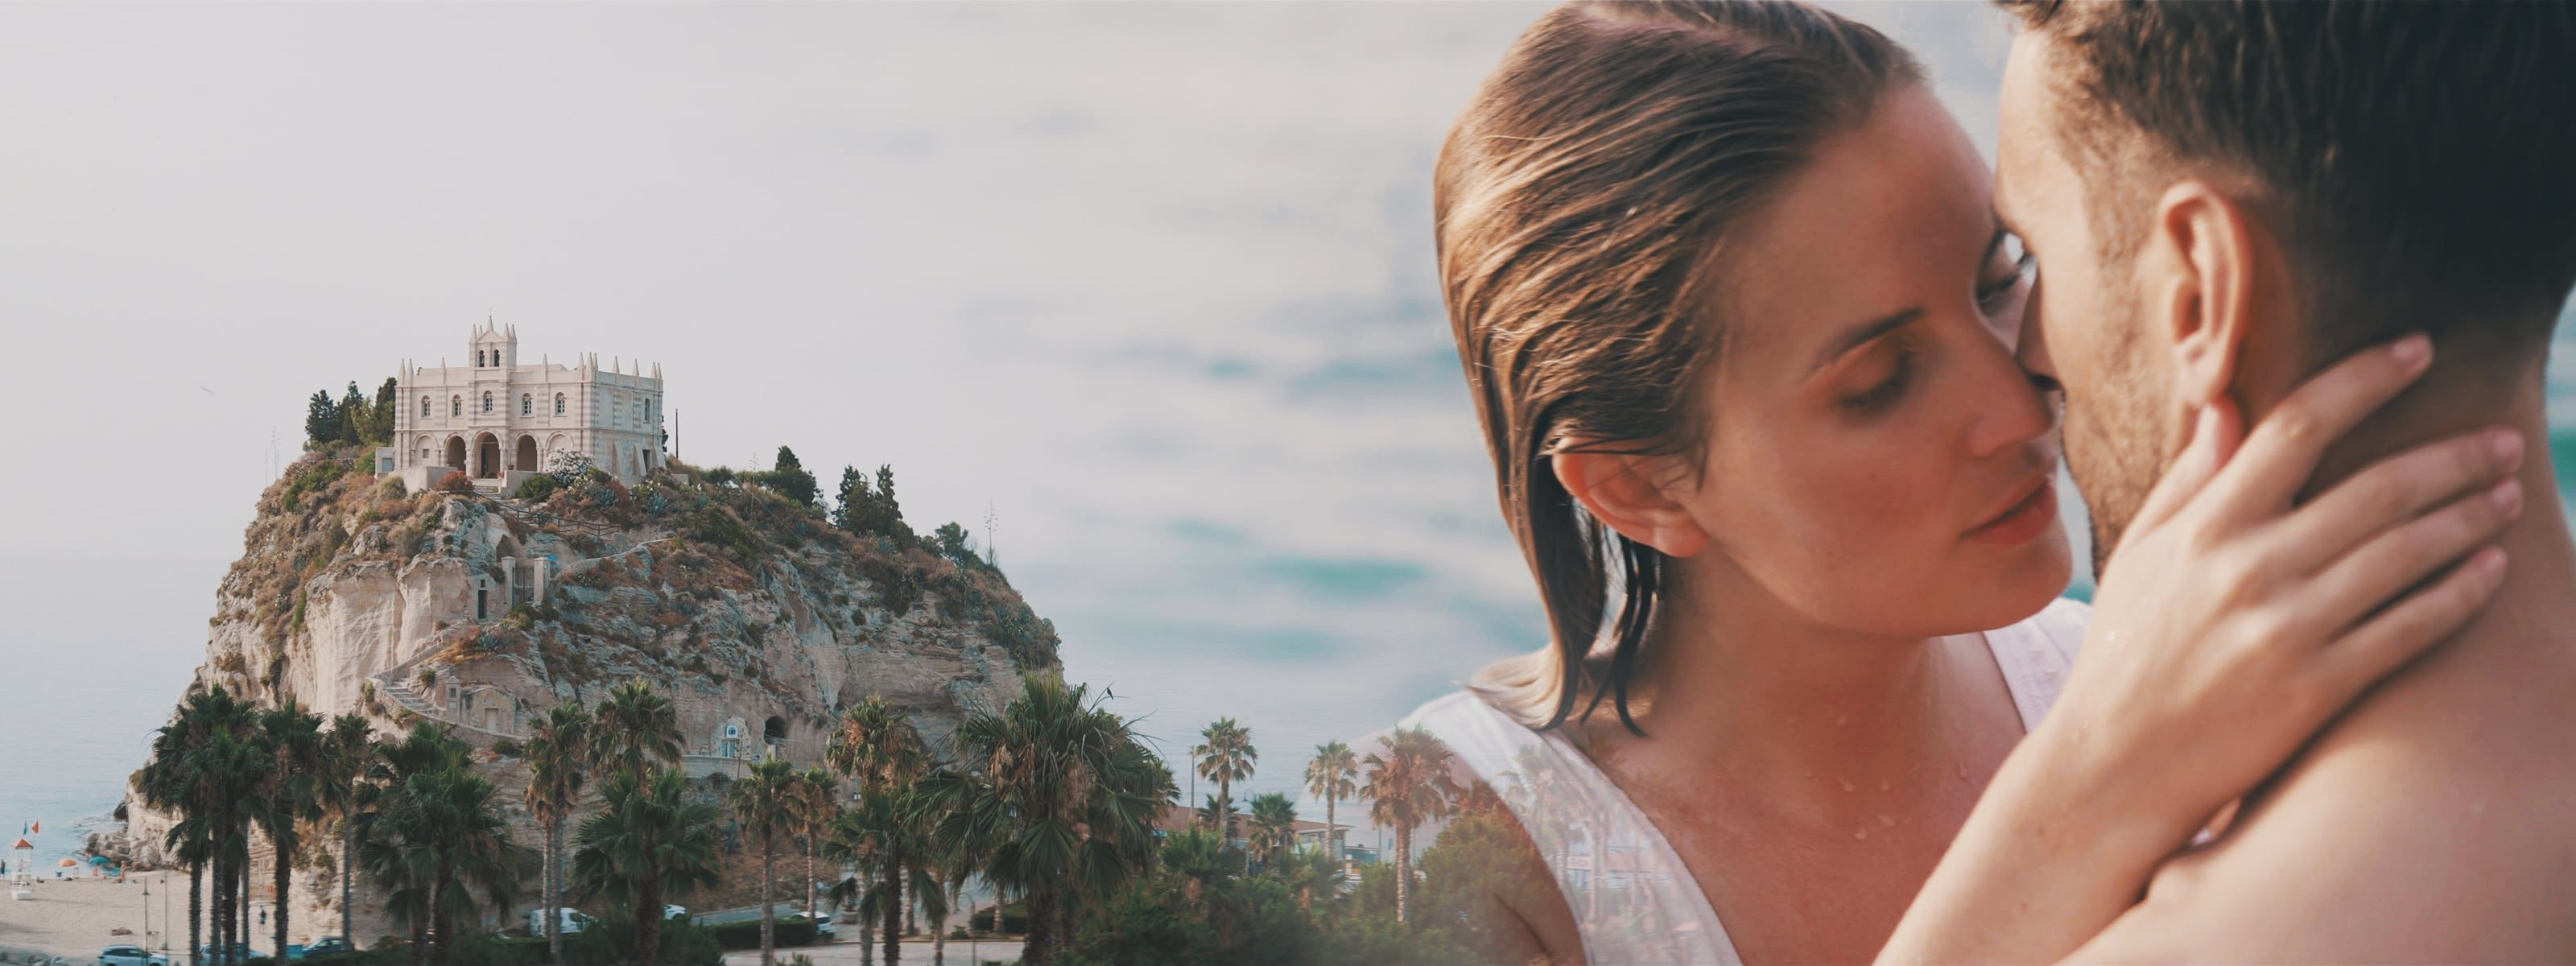 getting married in calabria, tropea, italy